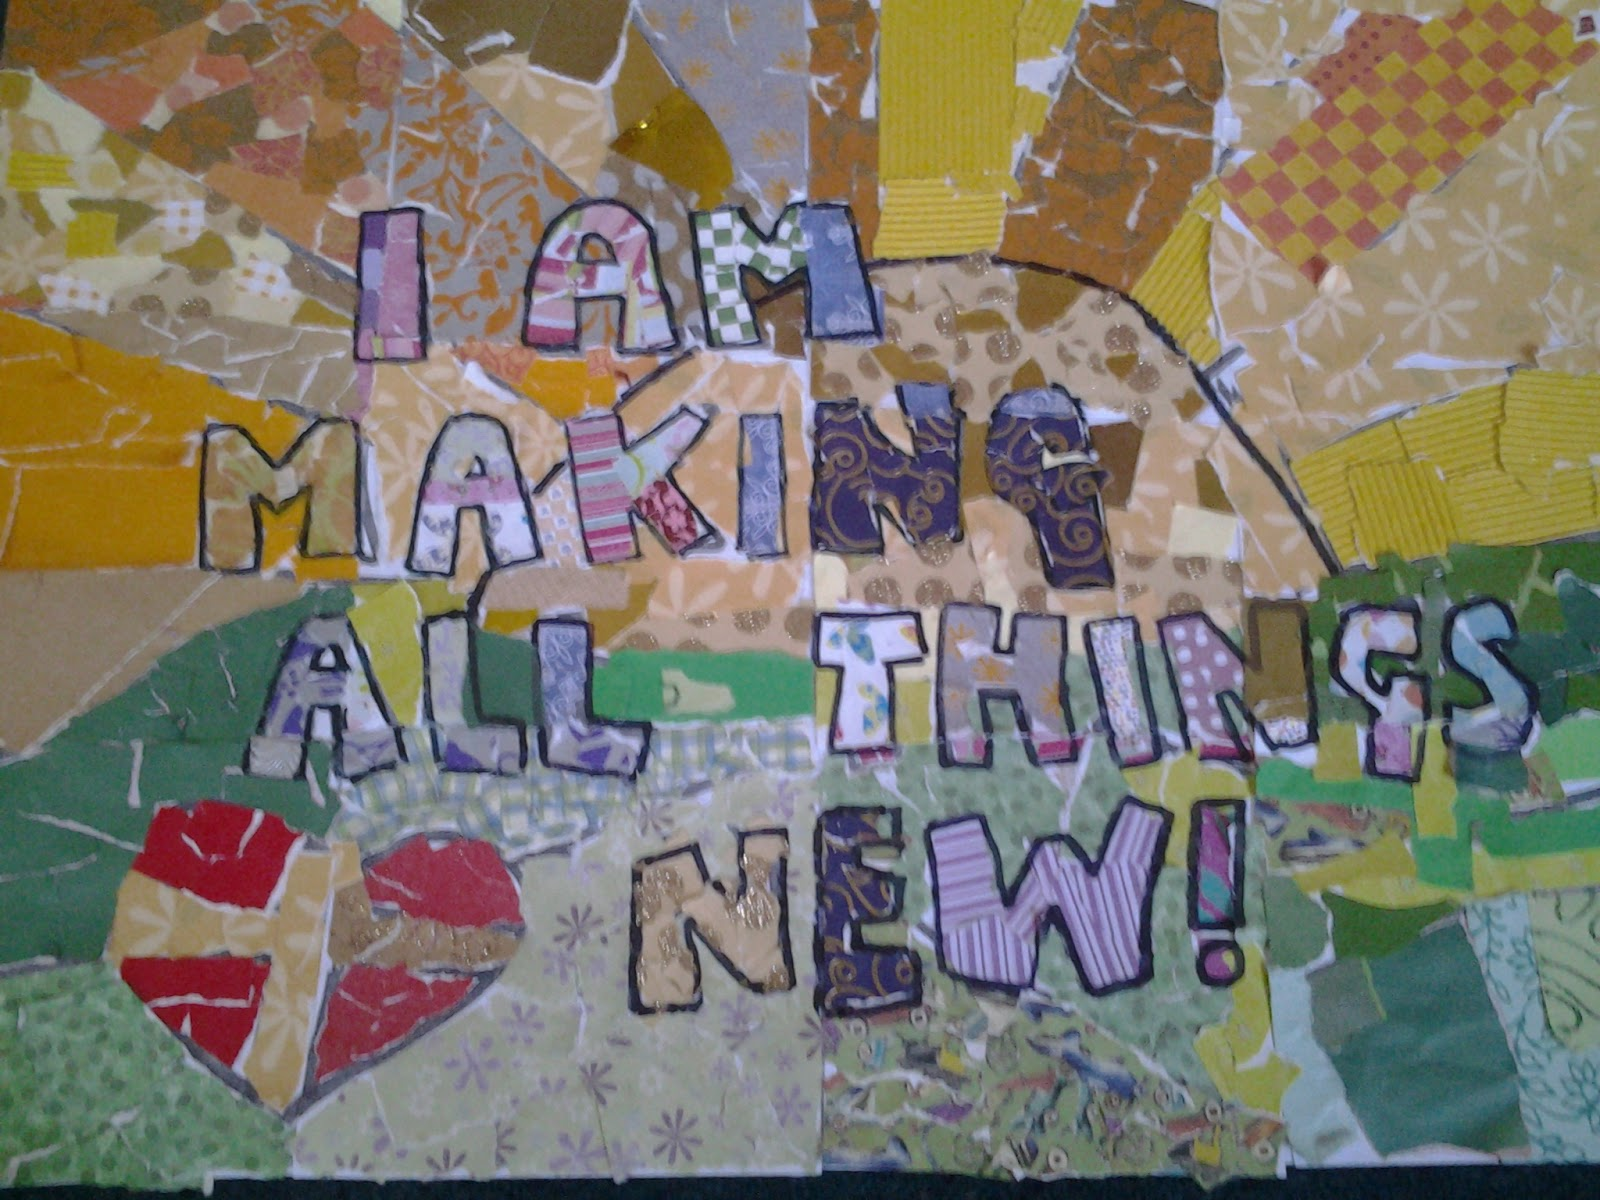 Flame: Creative Children's Ministry: The Lord's Prayer